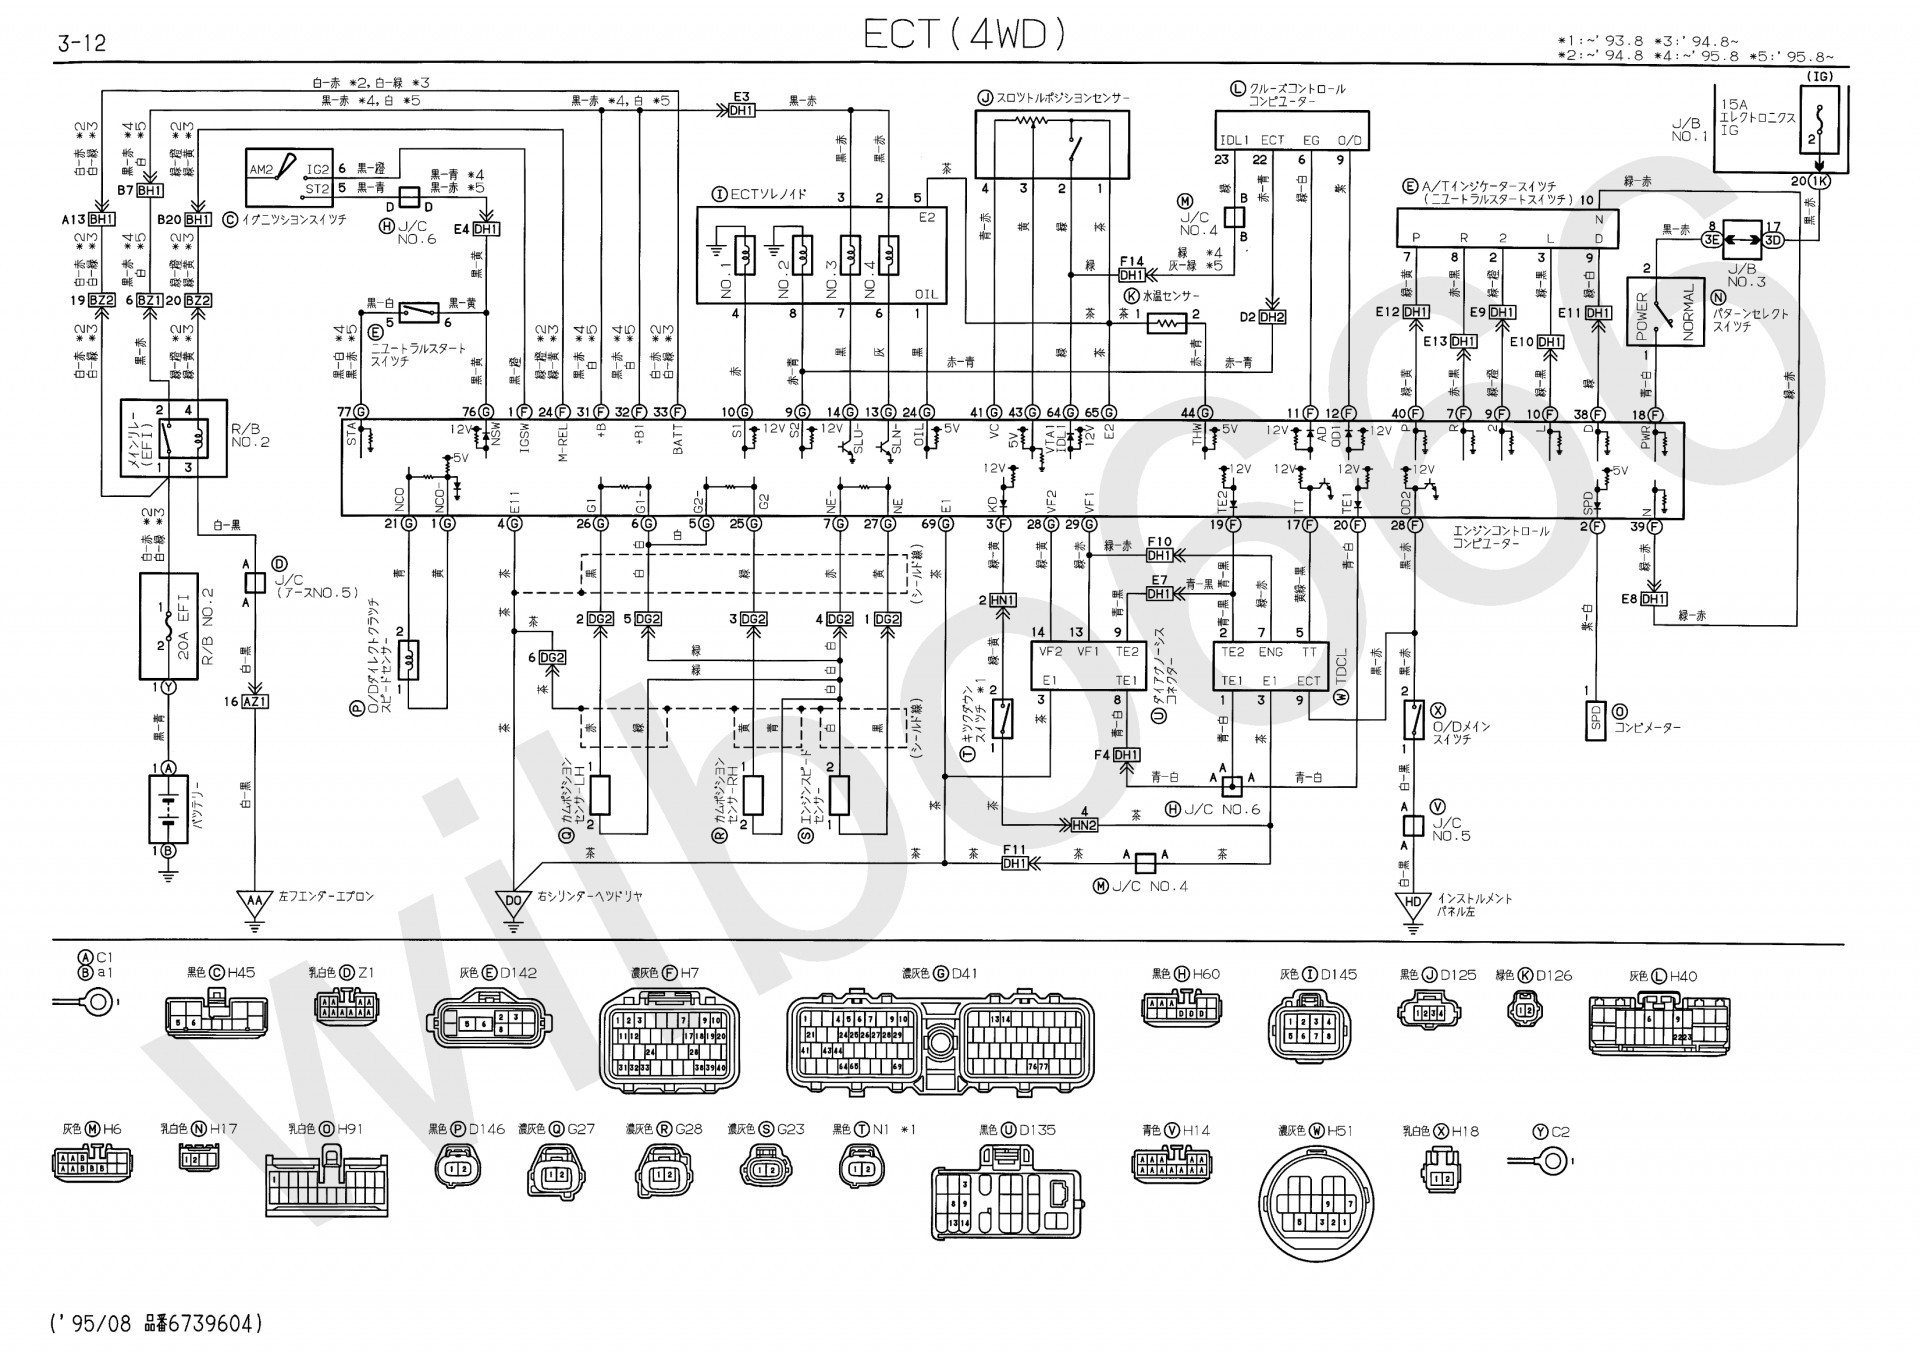 Tecumseh Engine Wiring Diagram Diagram Engine Electrical Floor Plan 2004 2010 Bmw X3 E83 3 0d Of Tecumseh Engine Wiring Diagram